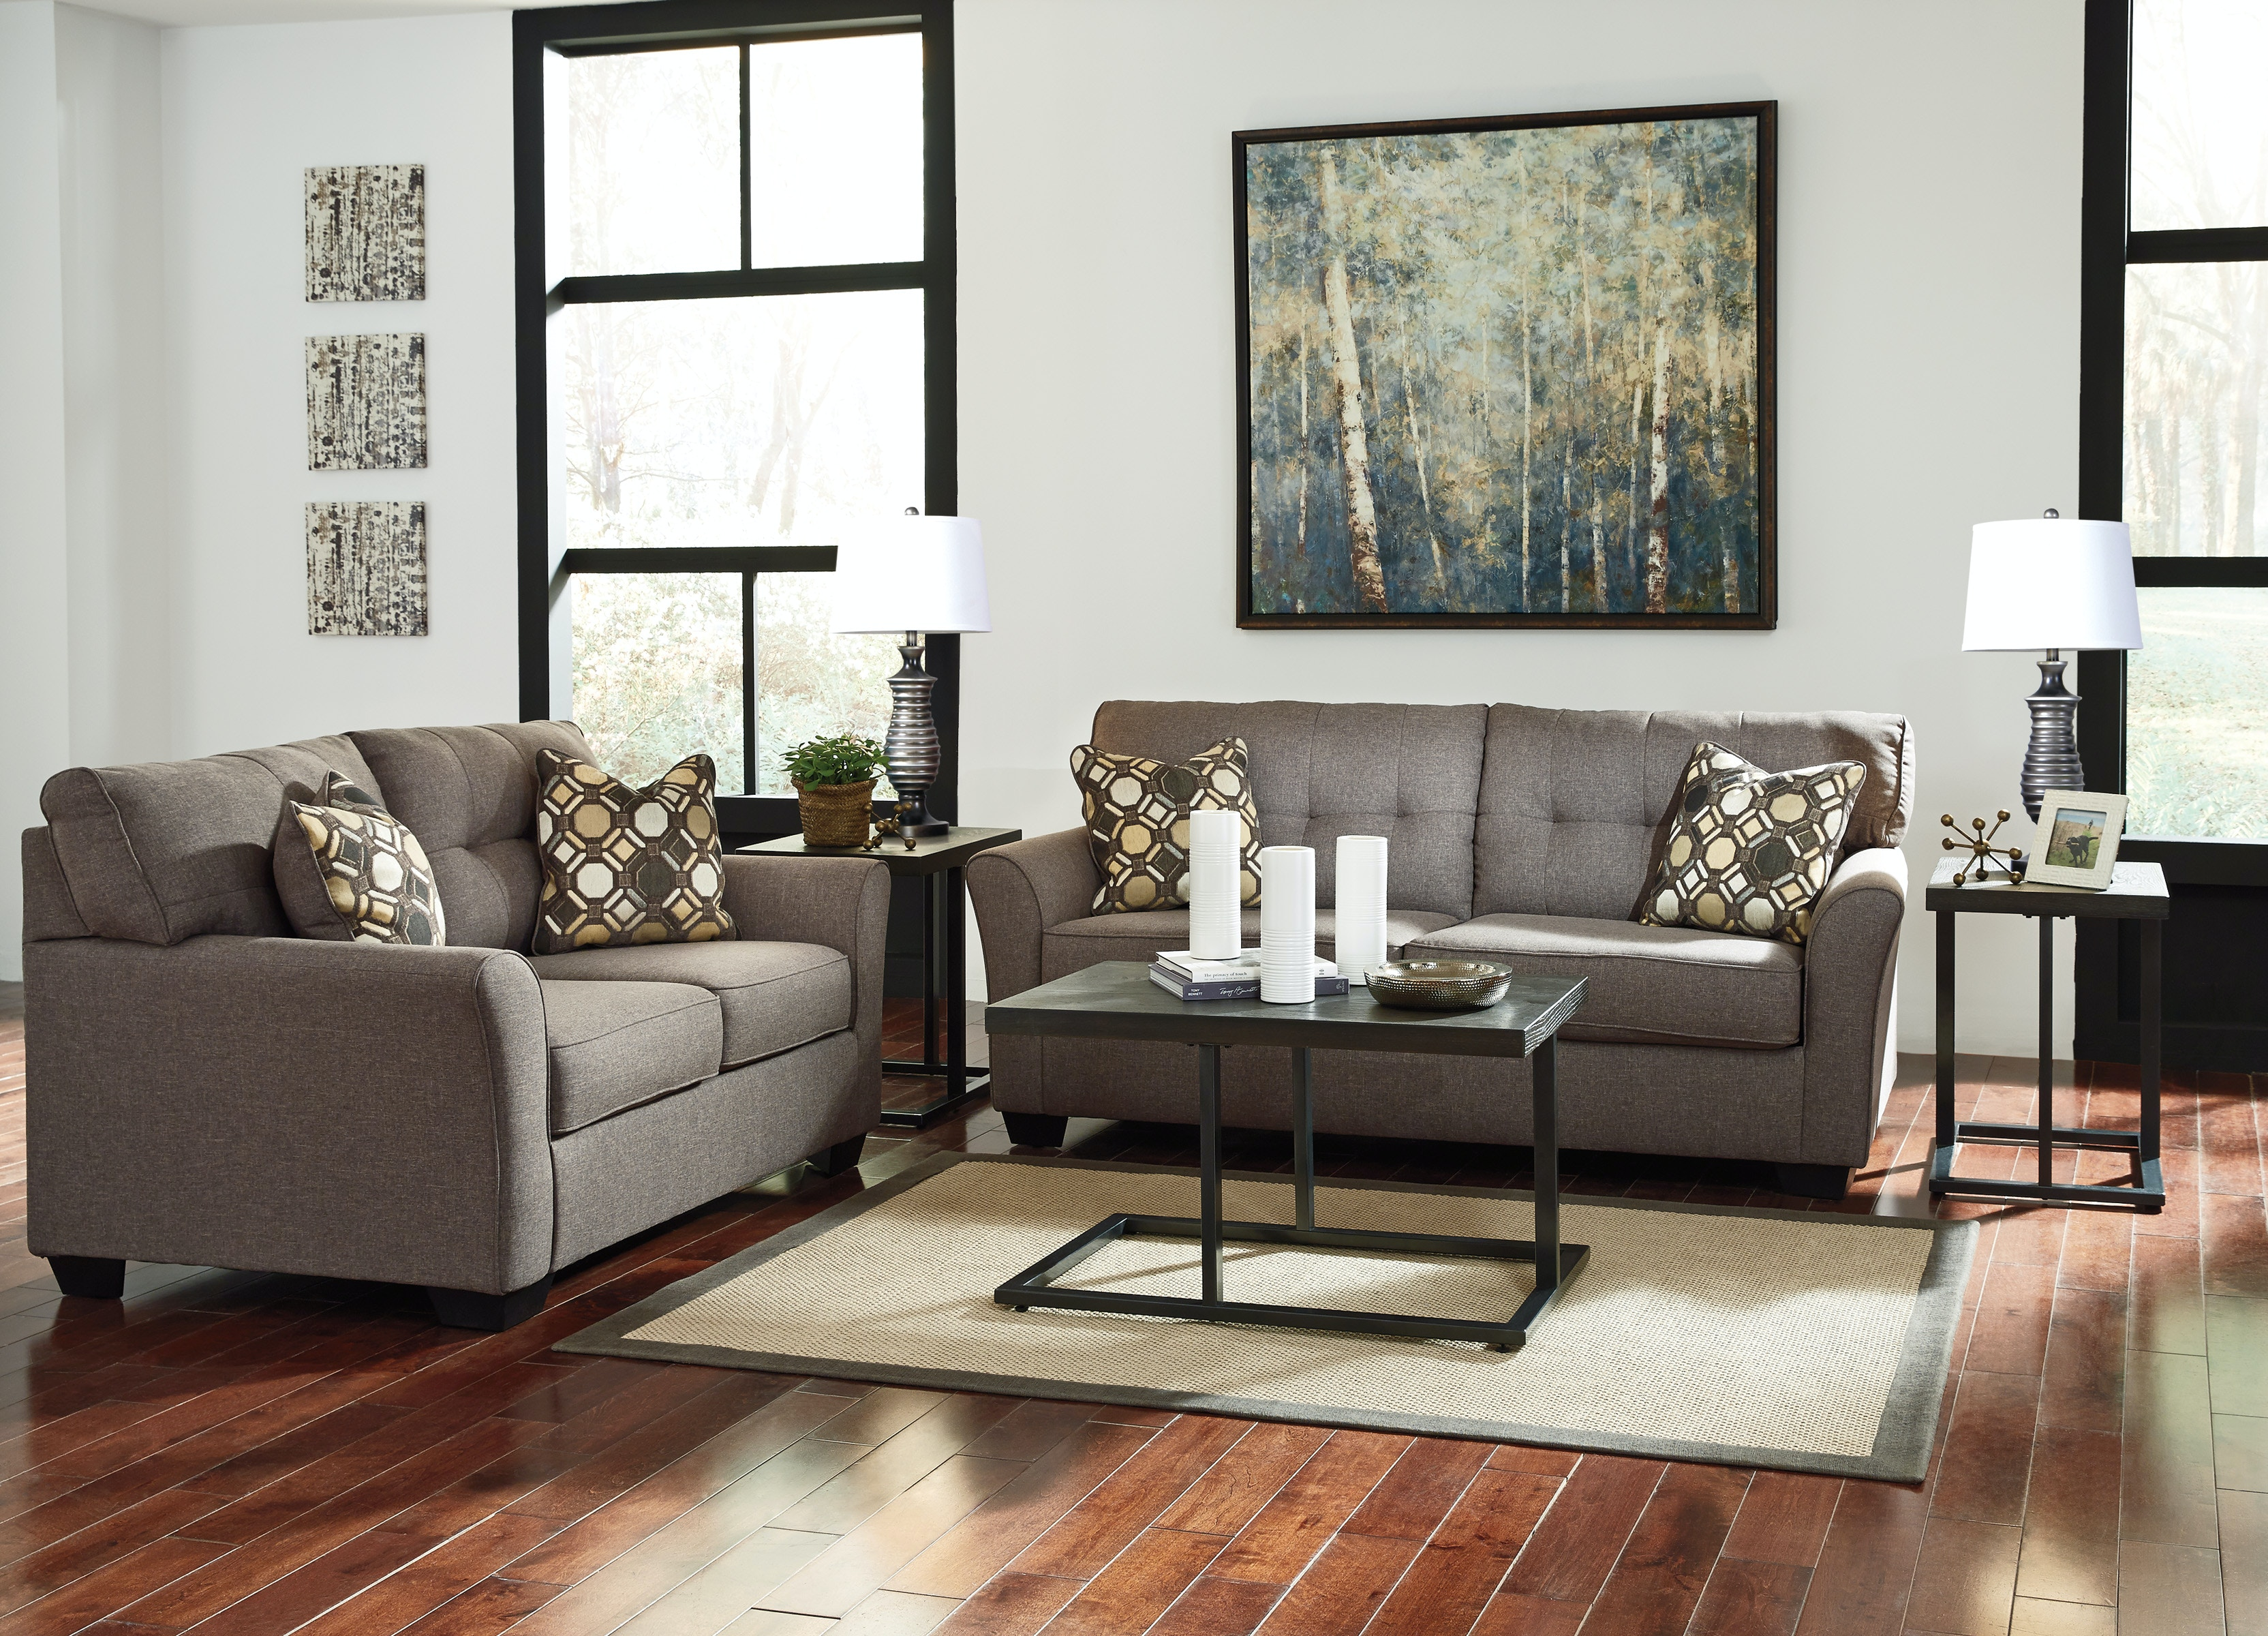 Design for less furniture Minimalist Interior Signature Design By Ashley Tribbee Sofa Loveseat On Sale At Elgin Furniture In Euclid Cleveland Heights North Randall Signature Design By Ashley Sofa Loveseat On Sale At Elgin